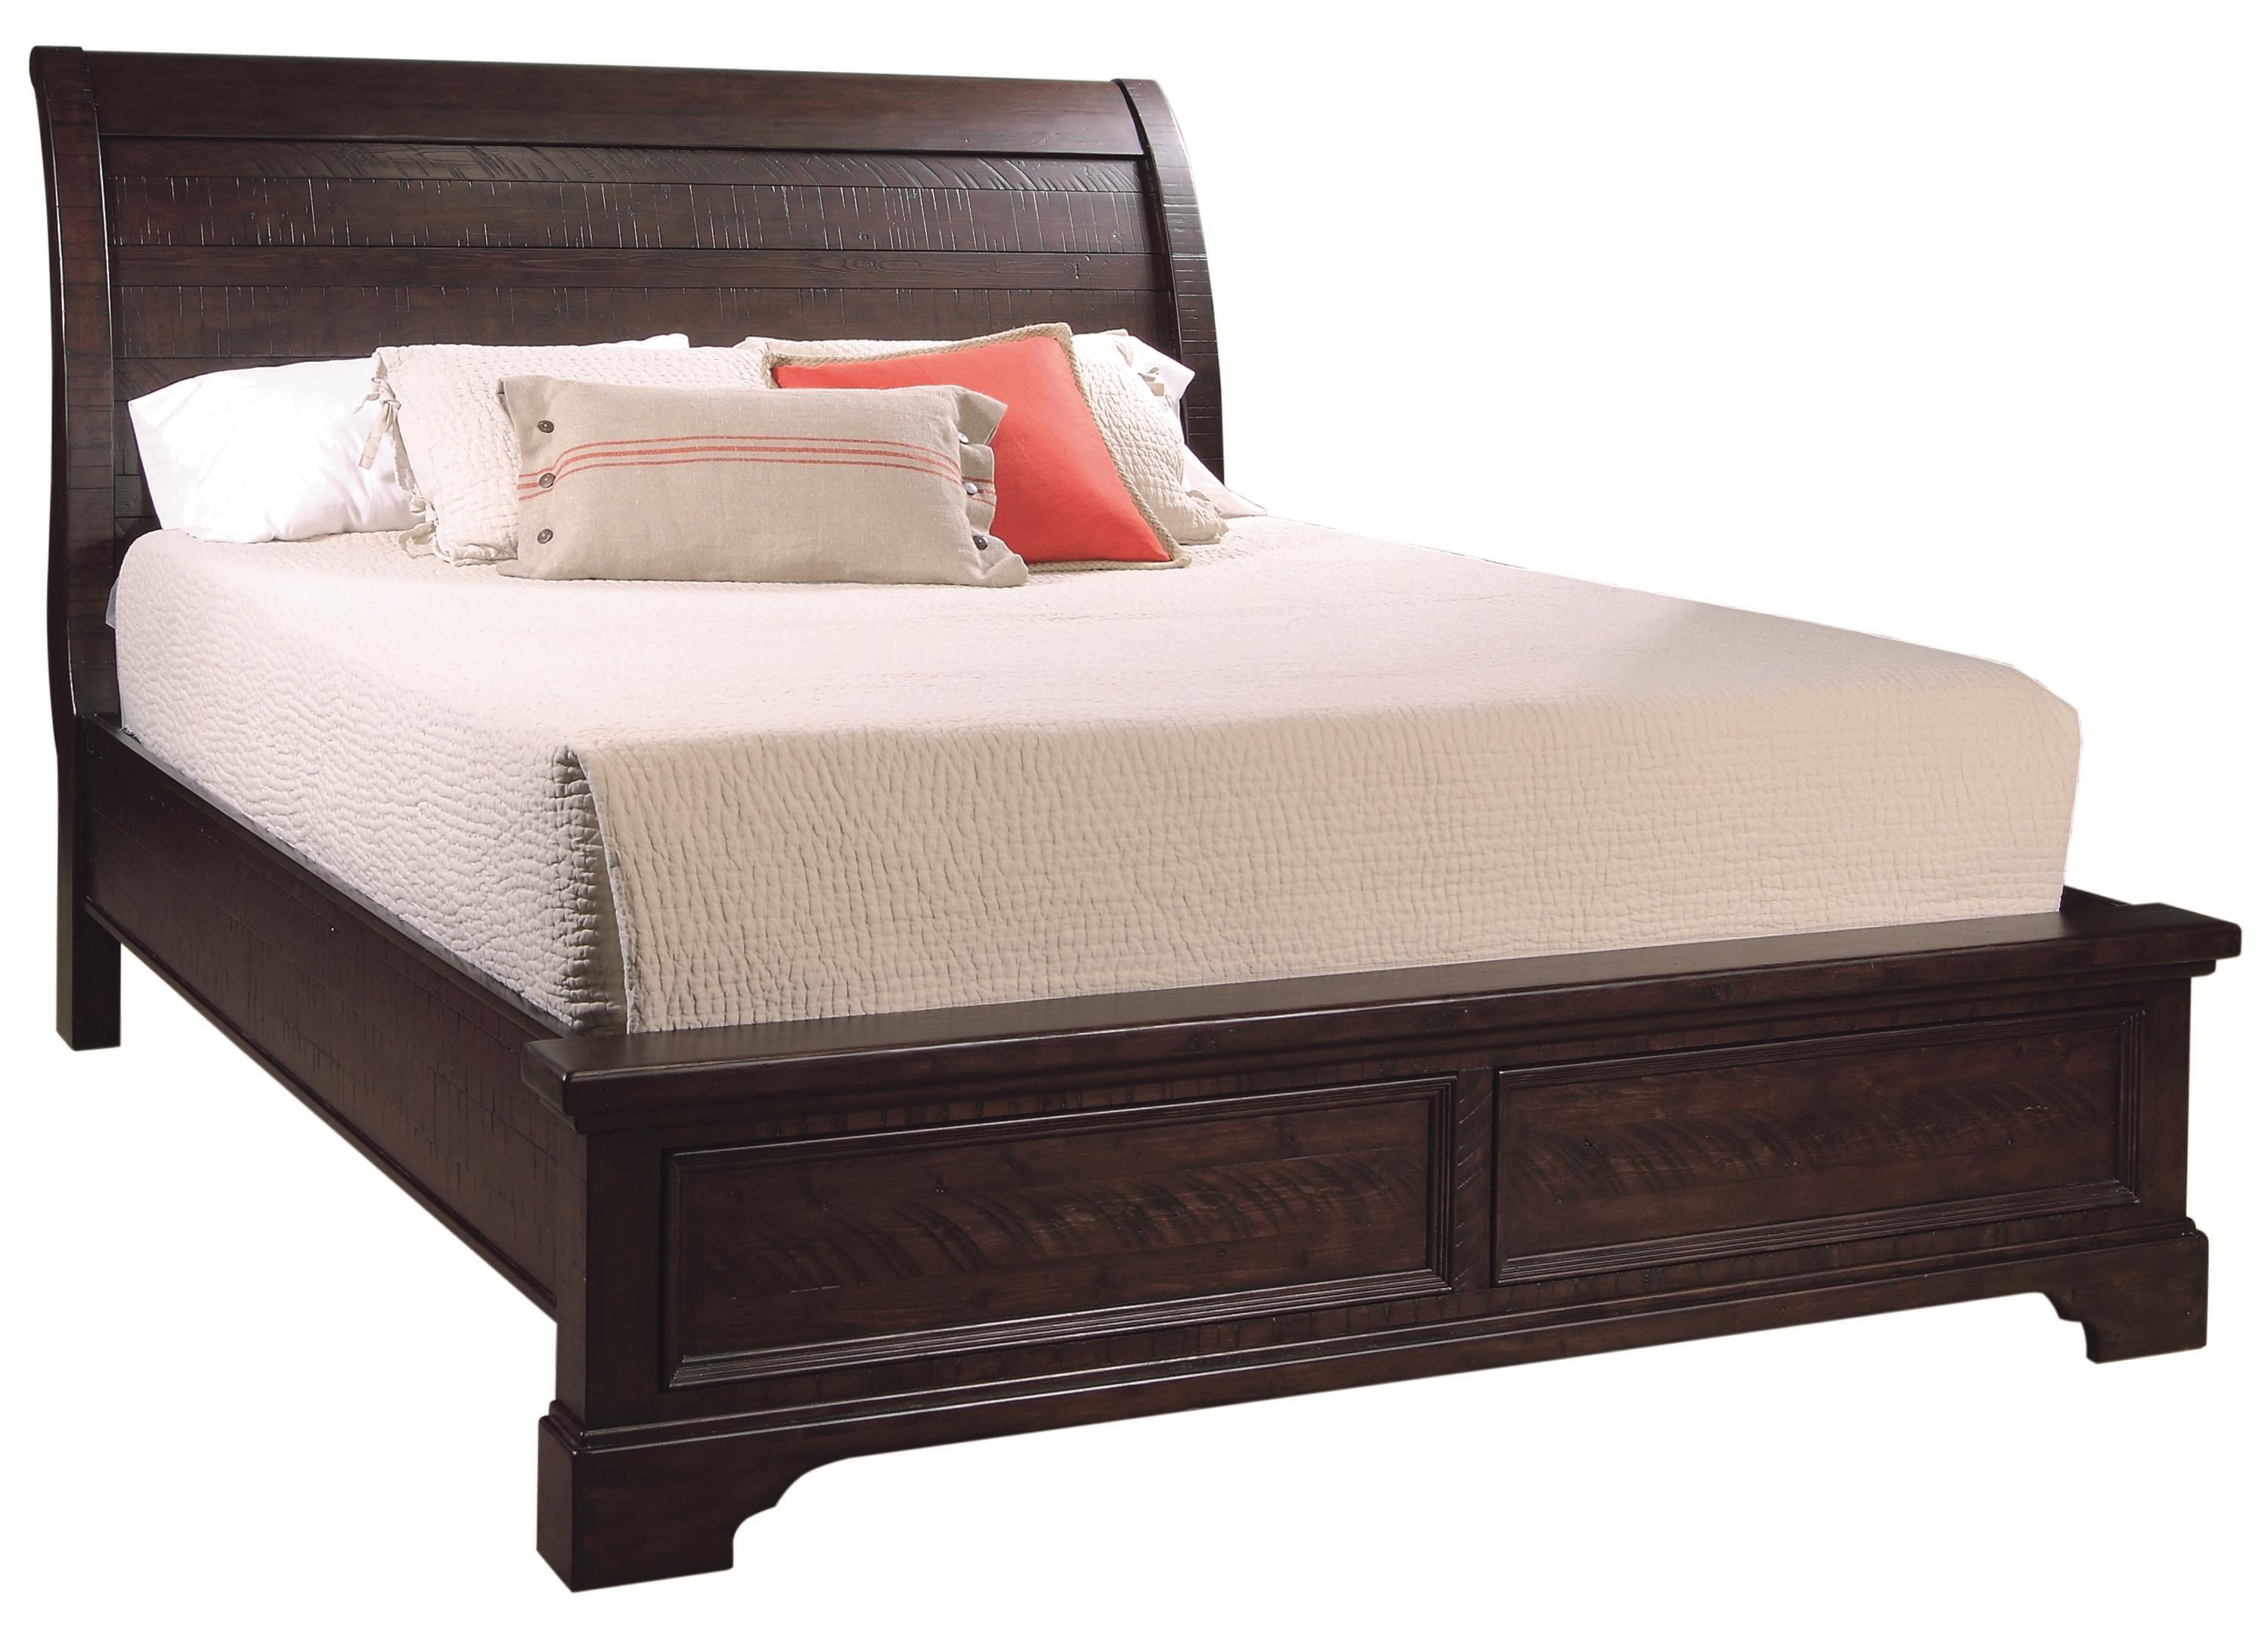 Aspenhome Bayfield California King Sleigh Bed - Item Number: I70-404-DK-407-410